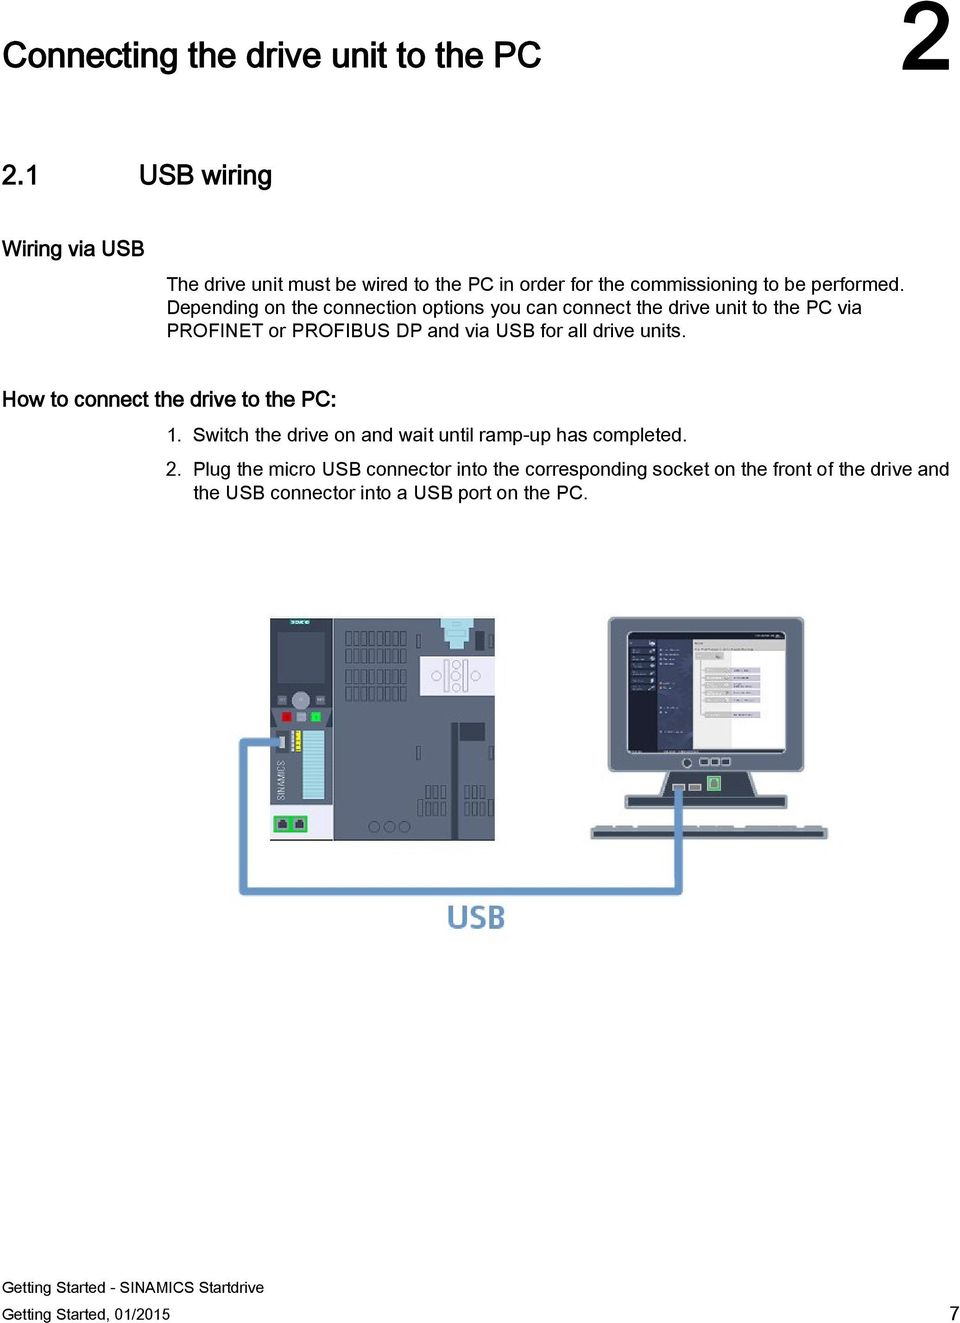 Depending on the connection options you can connect the drive unit to the PC via PROFINET or PROFIBUS DP and via USB for all drive units.